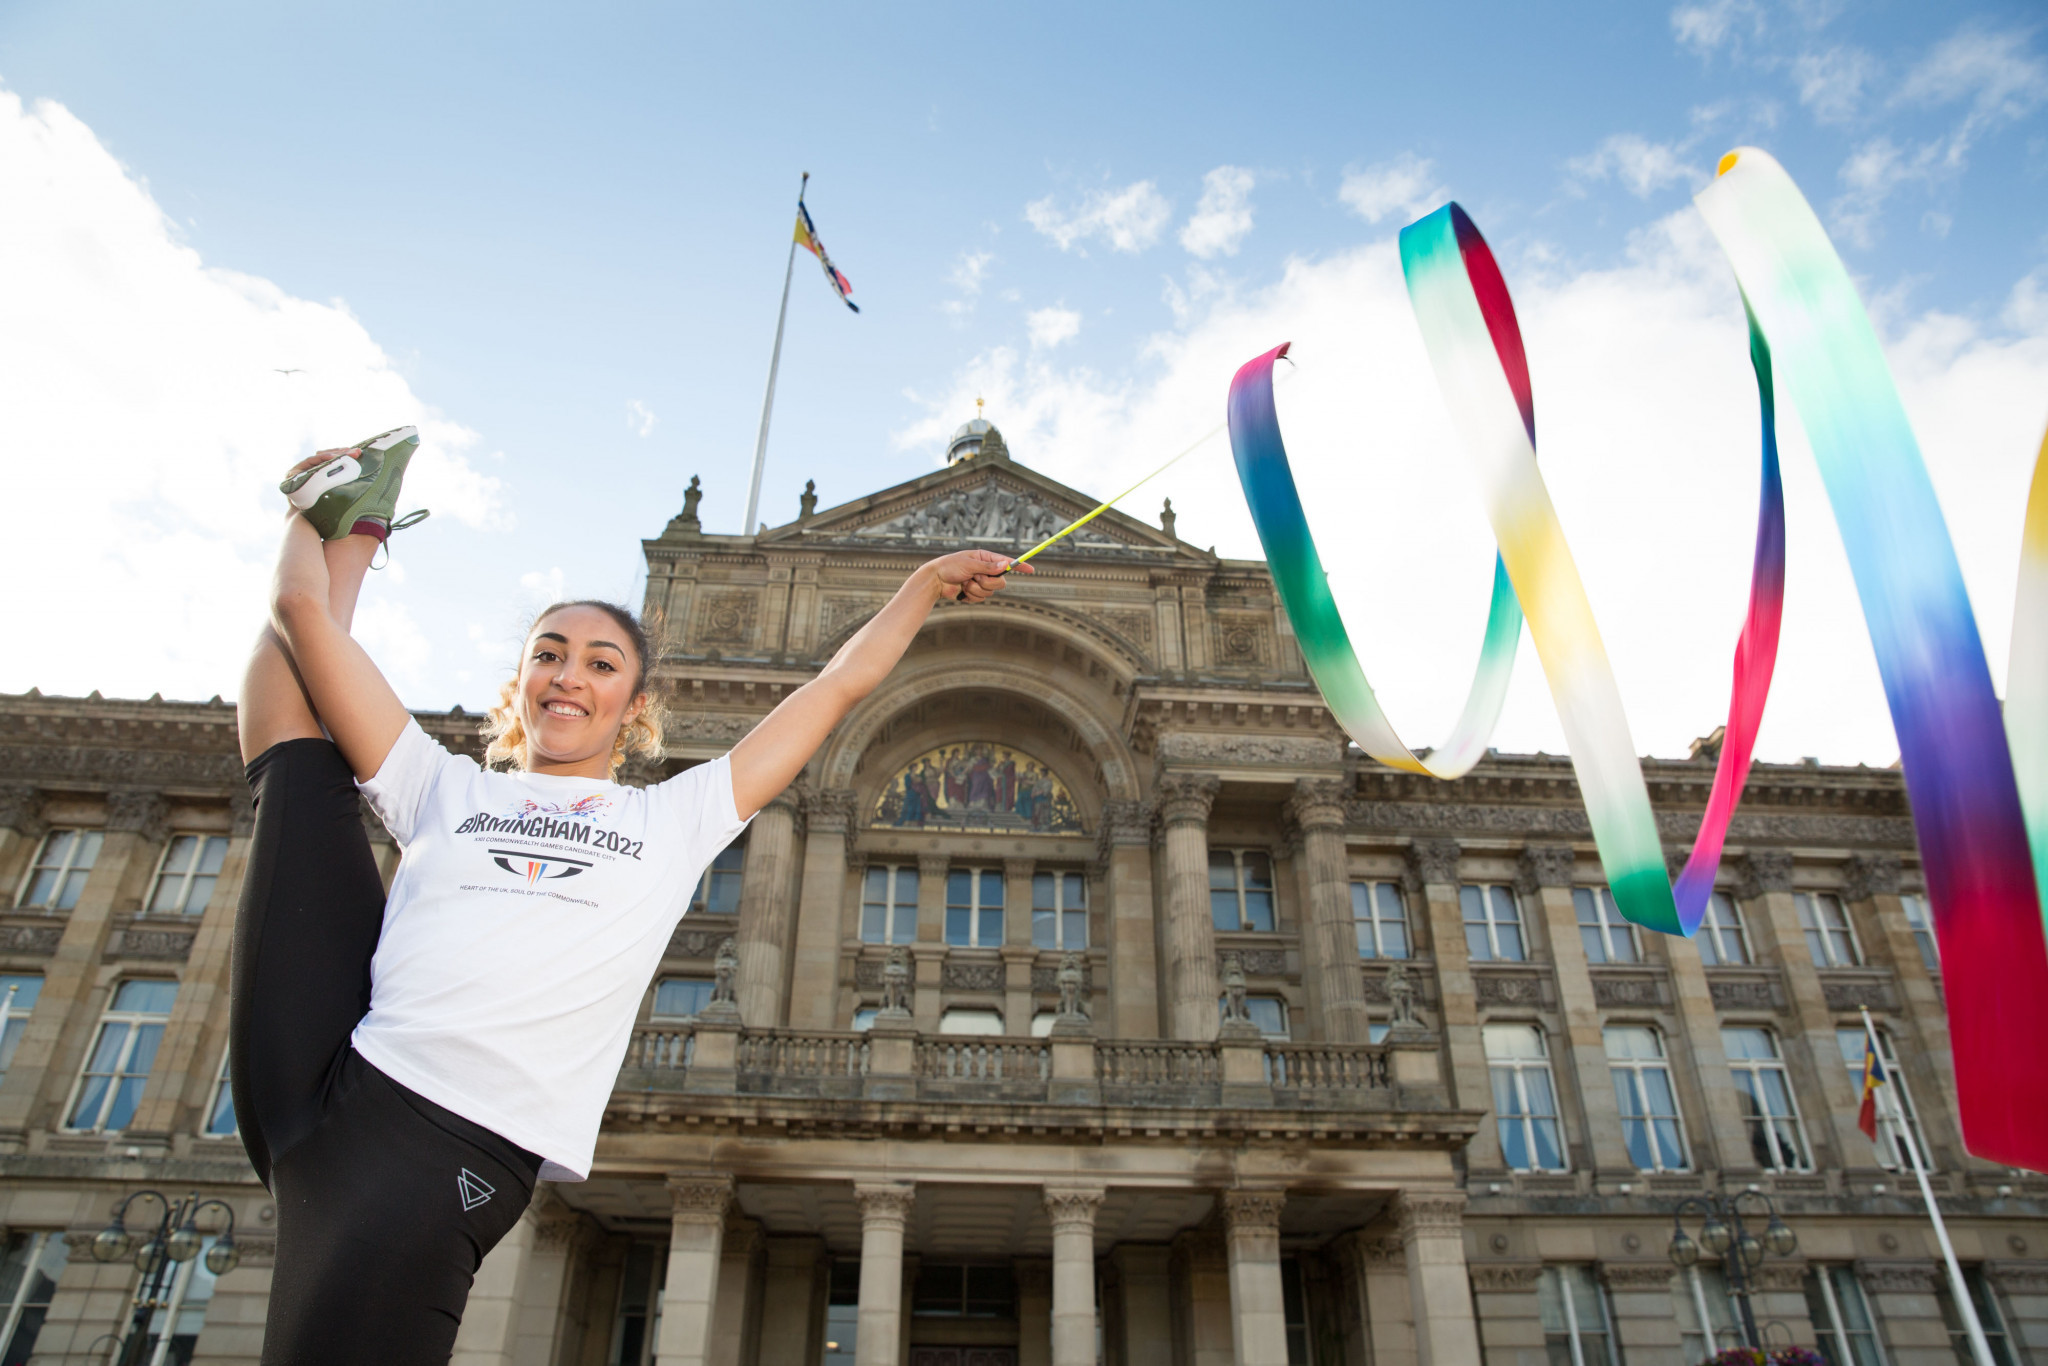 Birmingham remain in pole position to host the 2022 Commonwealth Games ©Birmingham 2022